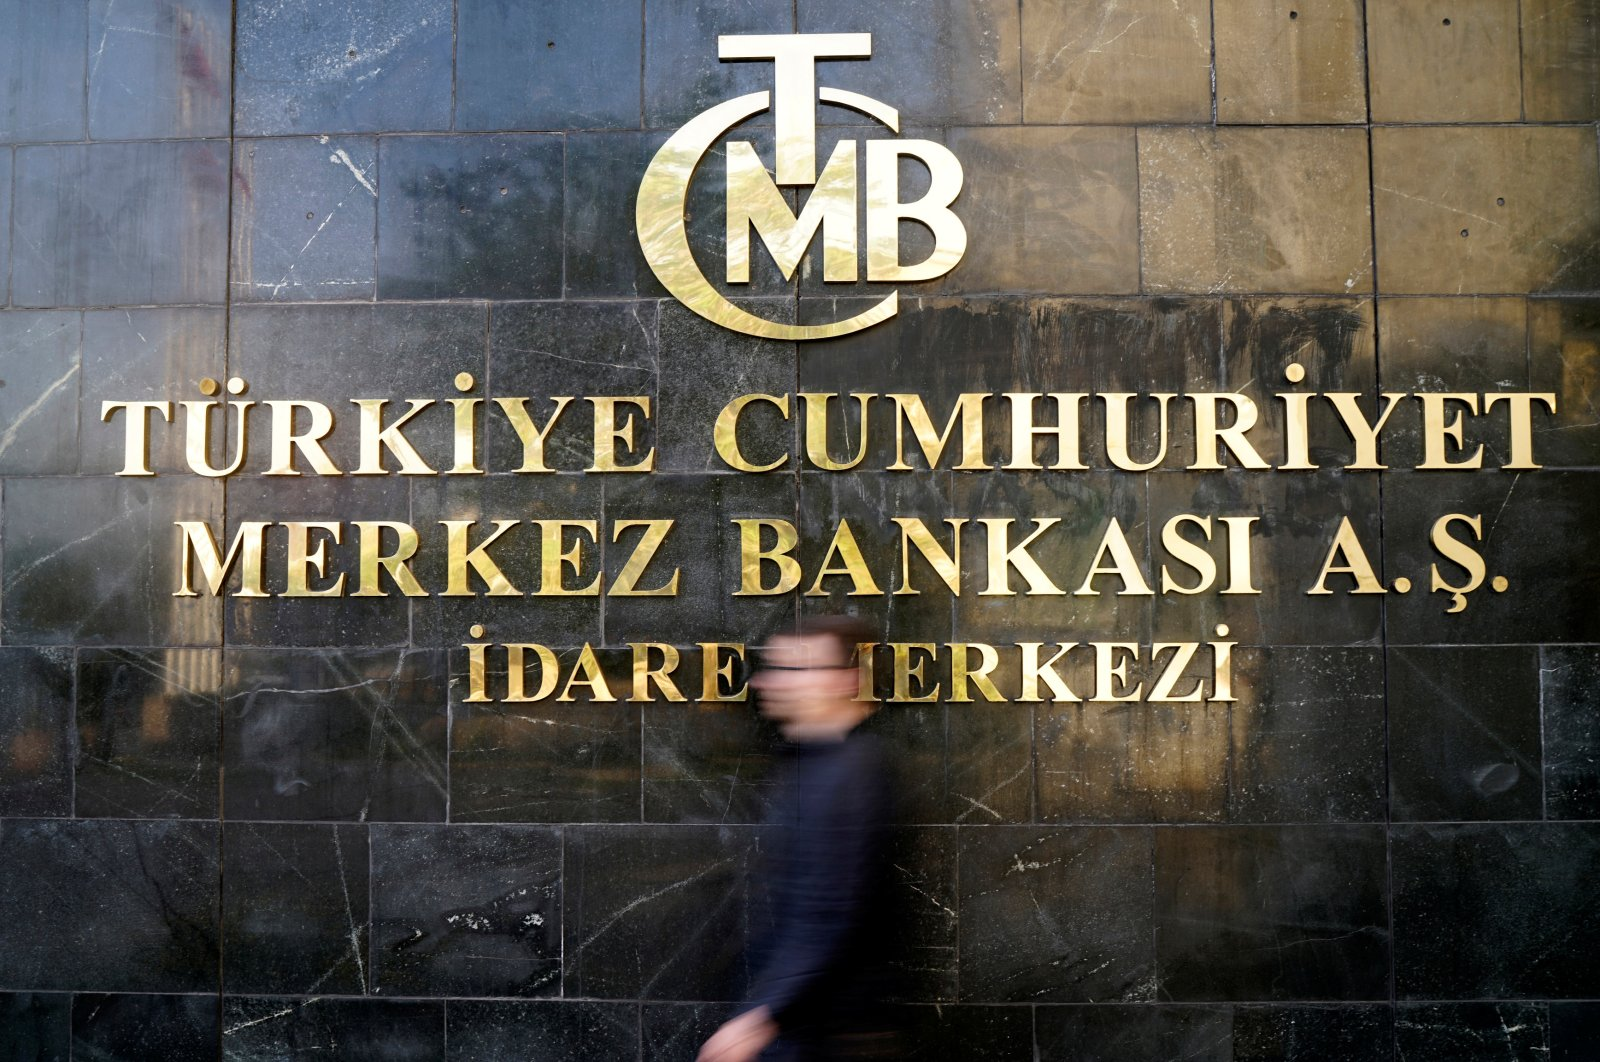 A man leaves the Central Bank of the Republic of Turkey's (CBRT) headquarters in Ankara, Turkey, April 19, 2015. (Reuters Photo)